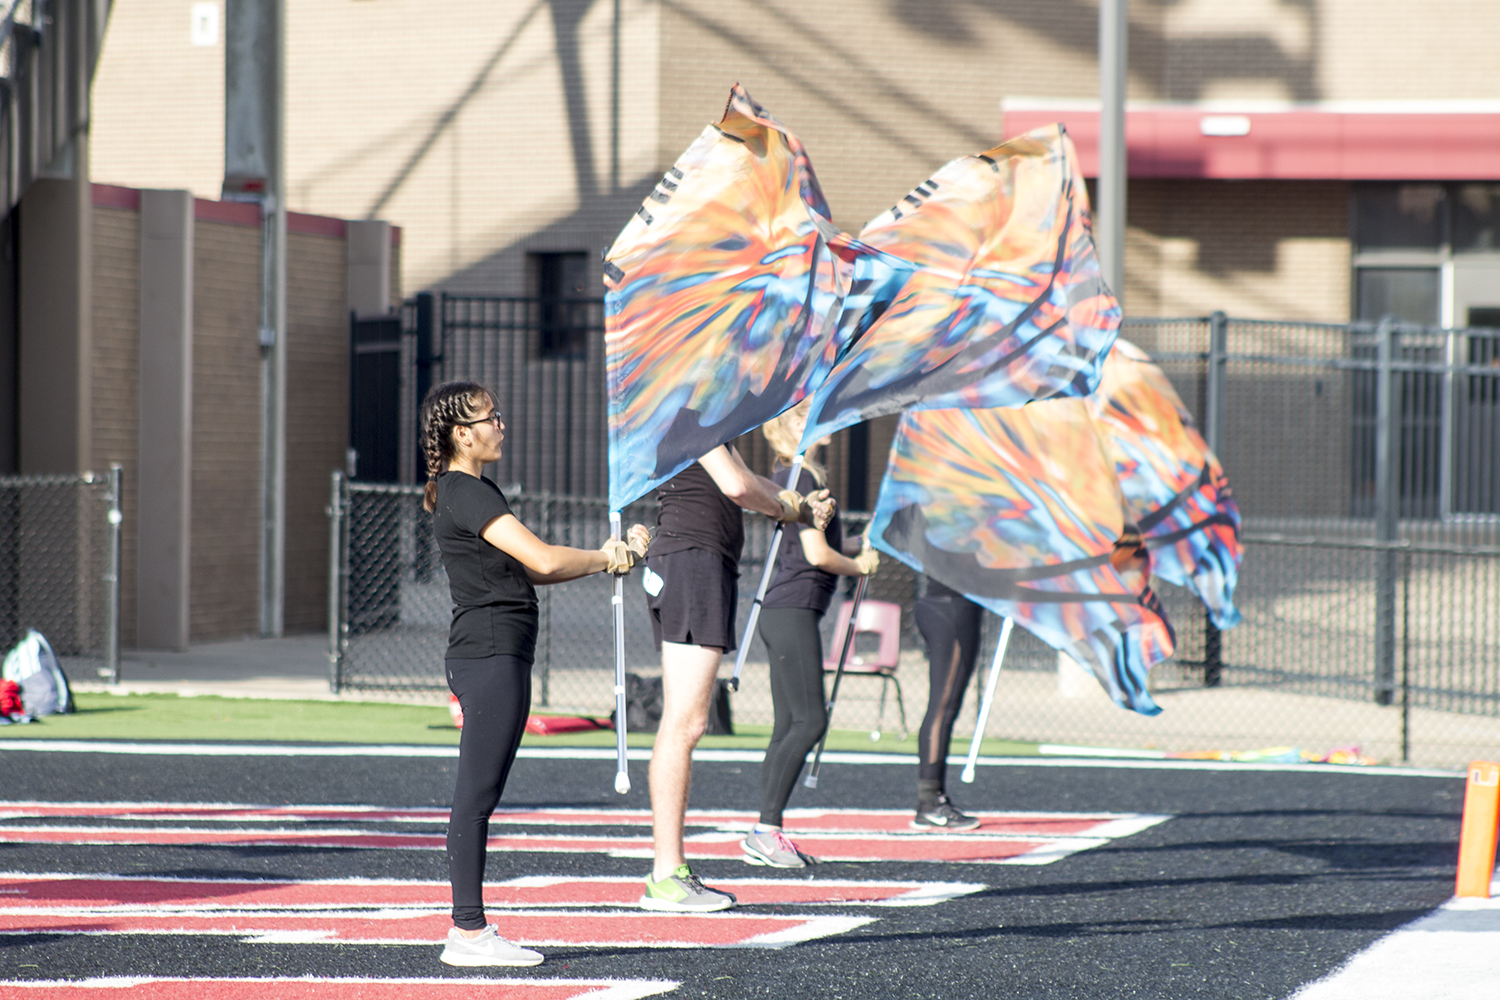 The color guard practices its routine on a field in Tulsa, Okla.